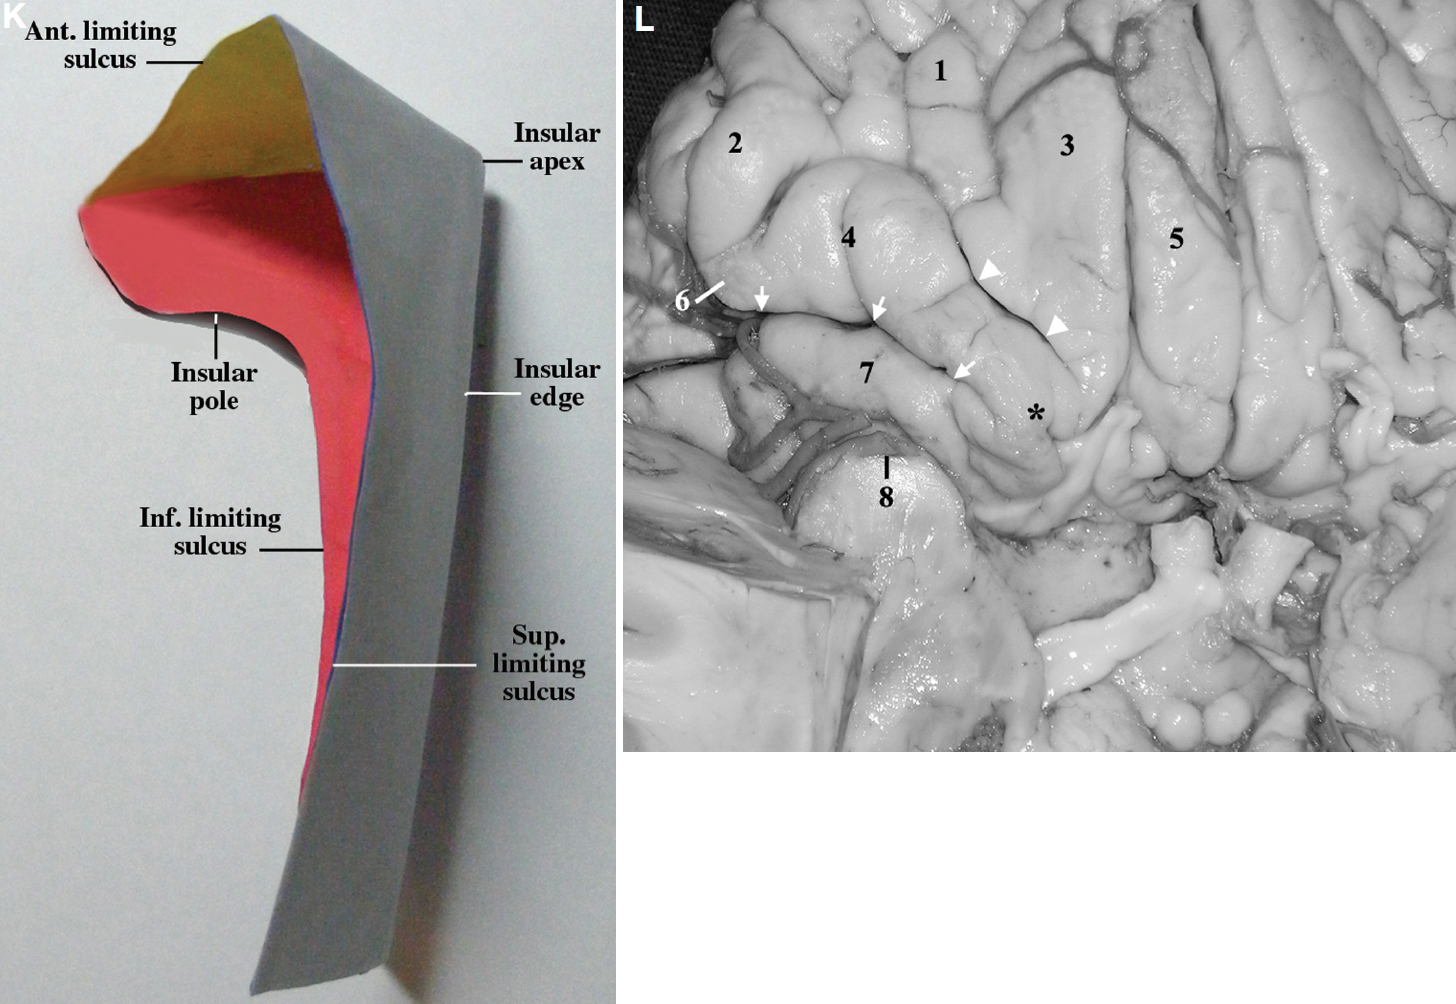 Figure 6 (K–L). K, schematic drawing depicting a posterosuperior view of the walls of the insula. The anterior wall is in yellow, the superolateral facet is in light blue, and the inferolateral facet is in red. L, basal view of the right frontal lobe. 1, anterior orbital gyrus; 2, lateral orbital gyrus; 3, medial orbital gyrus; 4, posterior orbital gyrus; 5, rectus gyrus; 6, pars orbitalis; 7, transverse gyrus; 8, insular pole. The arrows indicate anterior insular cleft. The arrowheads indicate posteromedial limb of the orbital sulcus. Asterisk, posteromedial orbital lobule, just anterior to the lateral olfactory stria and lateral to the olfactory sulcus. 1, frontal horn; 2, accessory gyrus of the insula; 3, lentiform nucleus and the internal capsule; 4, head of the caudate nucleus; 5, genu of the MCA; 6, insular pole; 7, anterior perforated substance; 8, amygdala; 9, head of the hippocampus. (Images courtesy of AL Rhoton, Jr.)